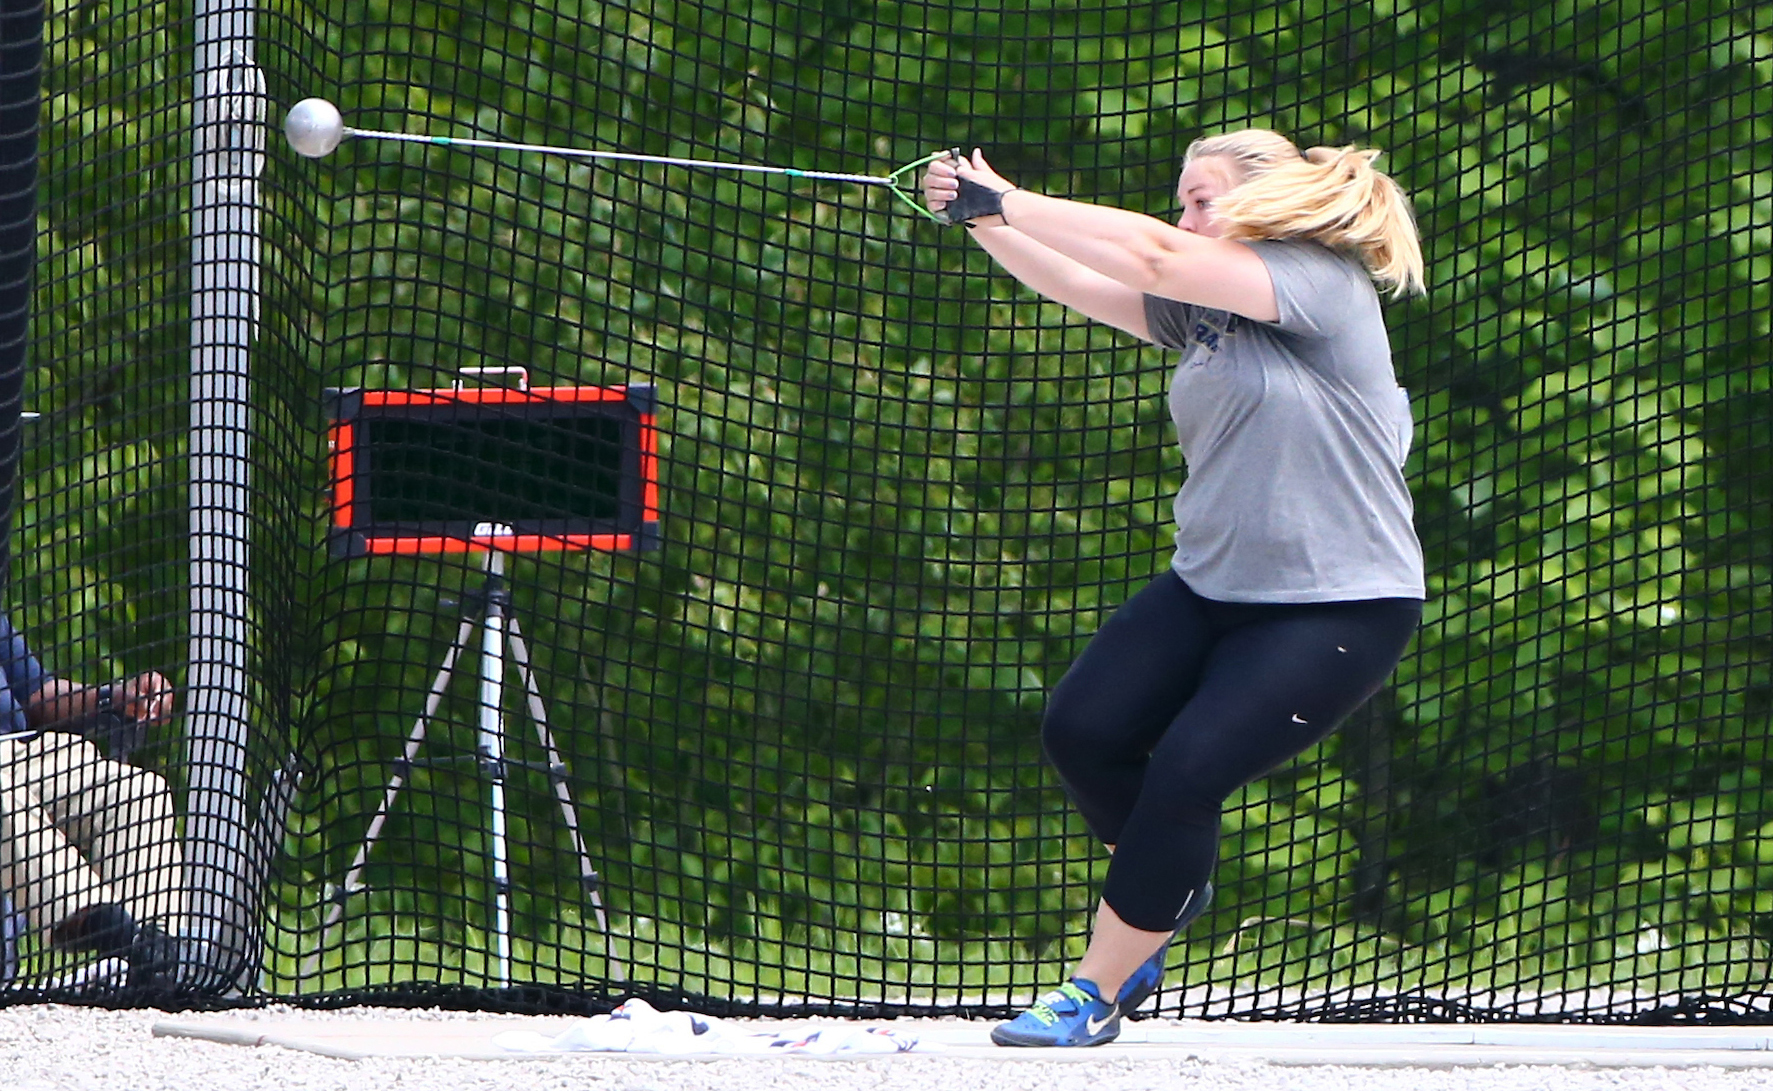 Eck Concludes Season with 18th-Place Finish in Hammer Throw